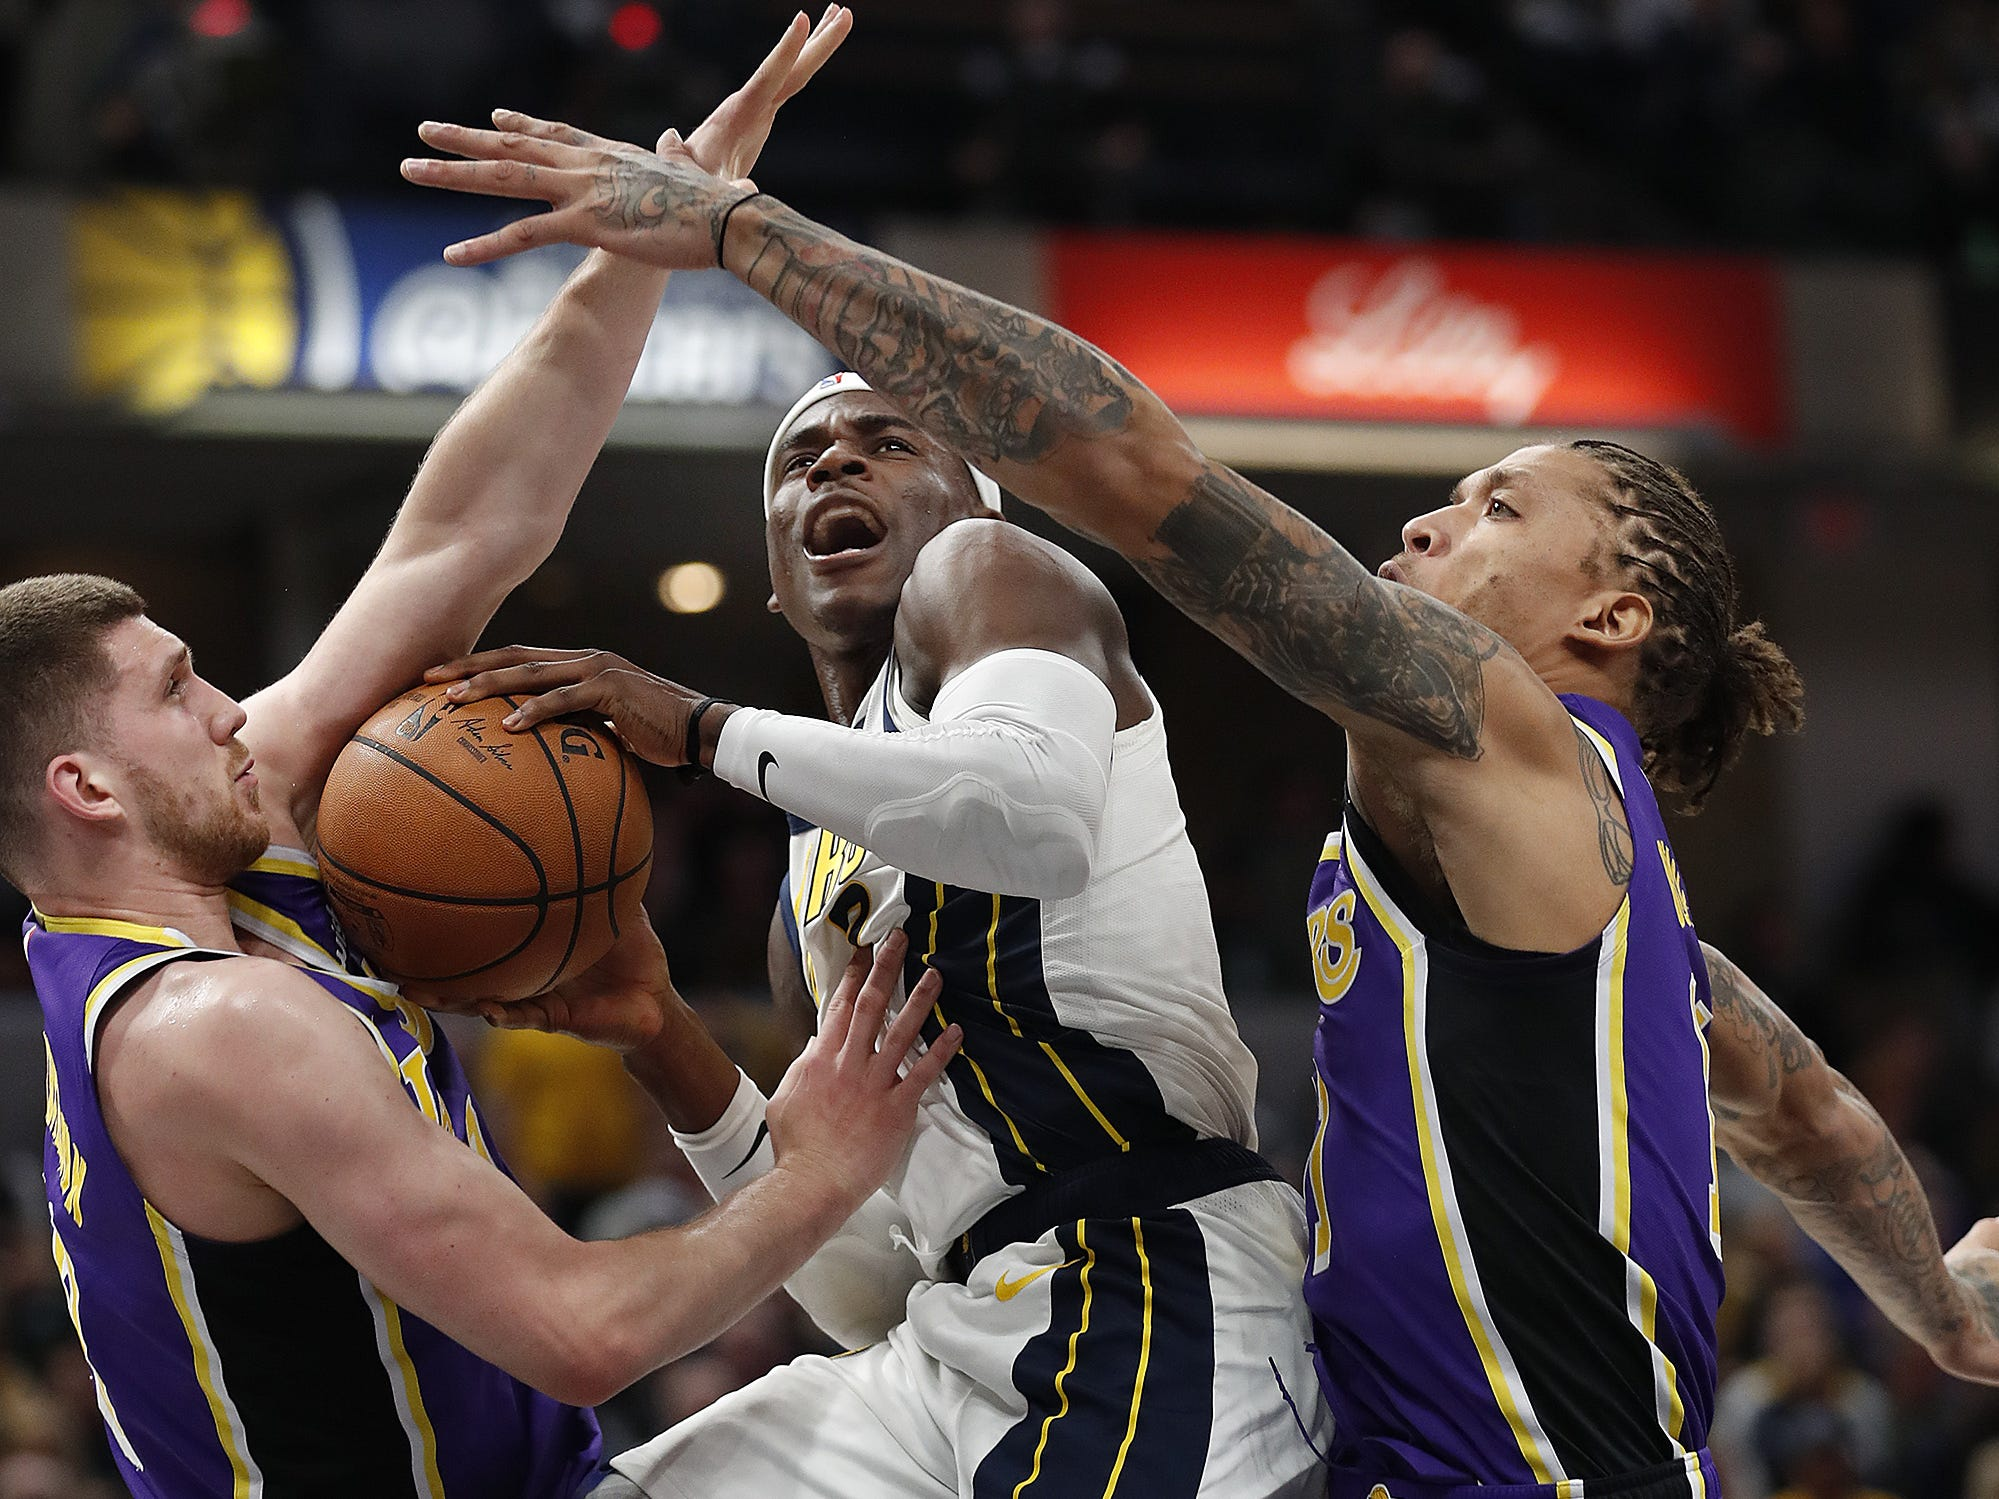 Indiana Pacers guard Aaron Holiday (3) drives between Los Angeles Lakers forward Michael Beasley (11) and Sviatoslav Mykhailiuk (10) in the second half of their game at Bankers Life Fieldhouse on Tuesday, Feb. 5, 2019.